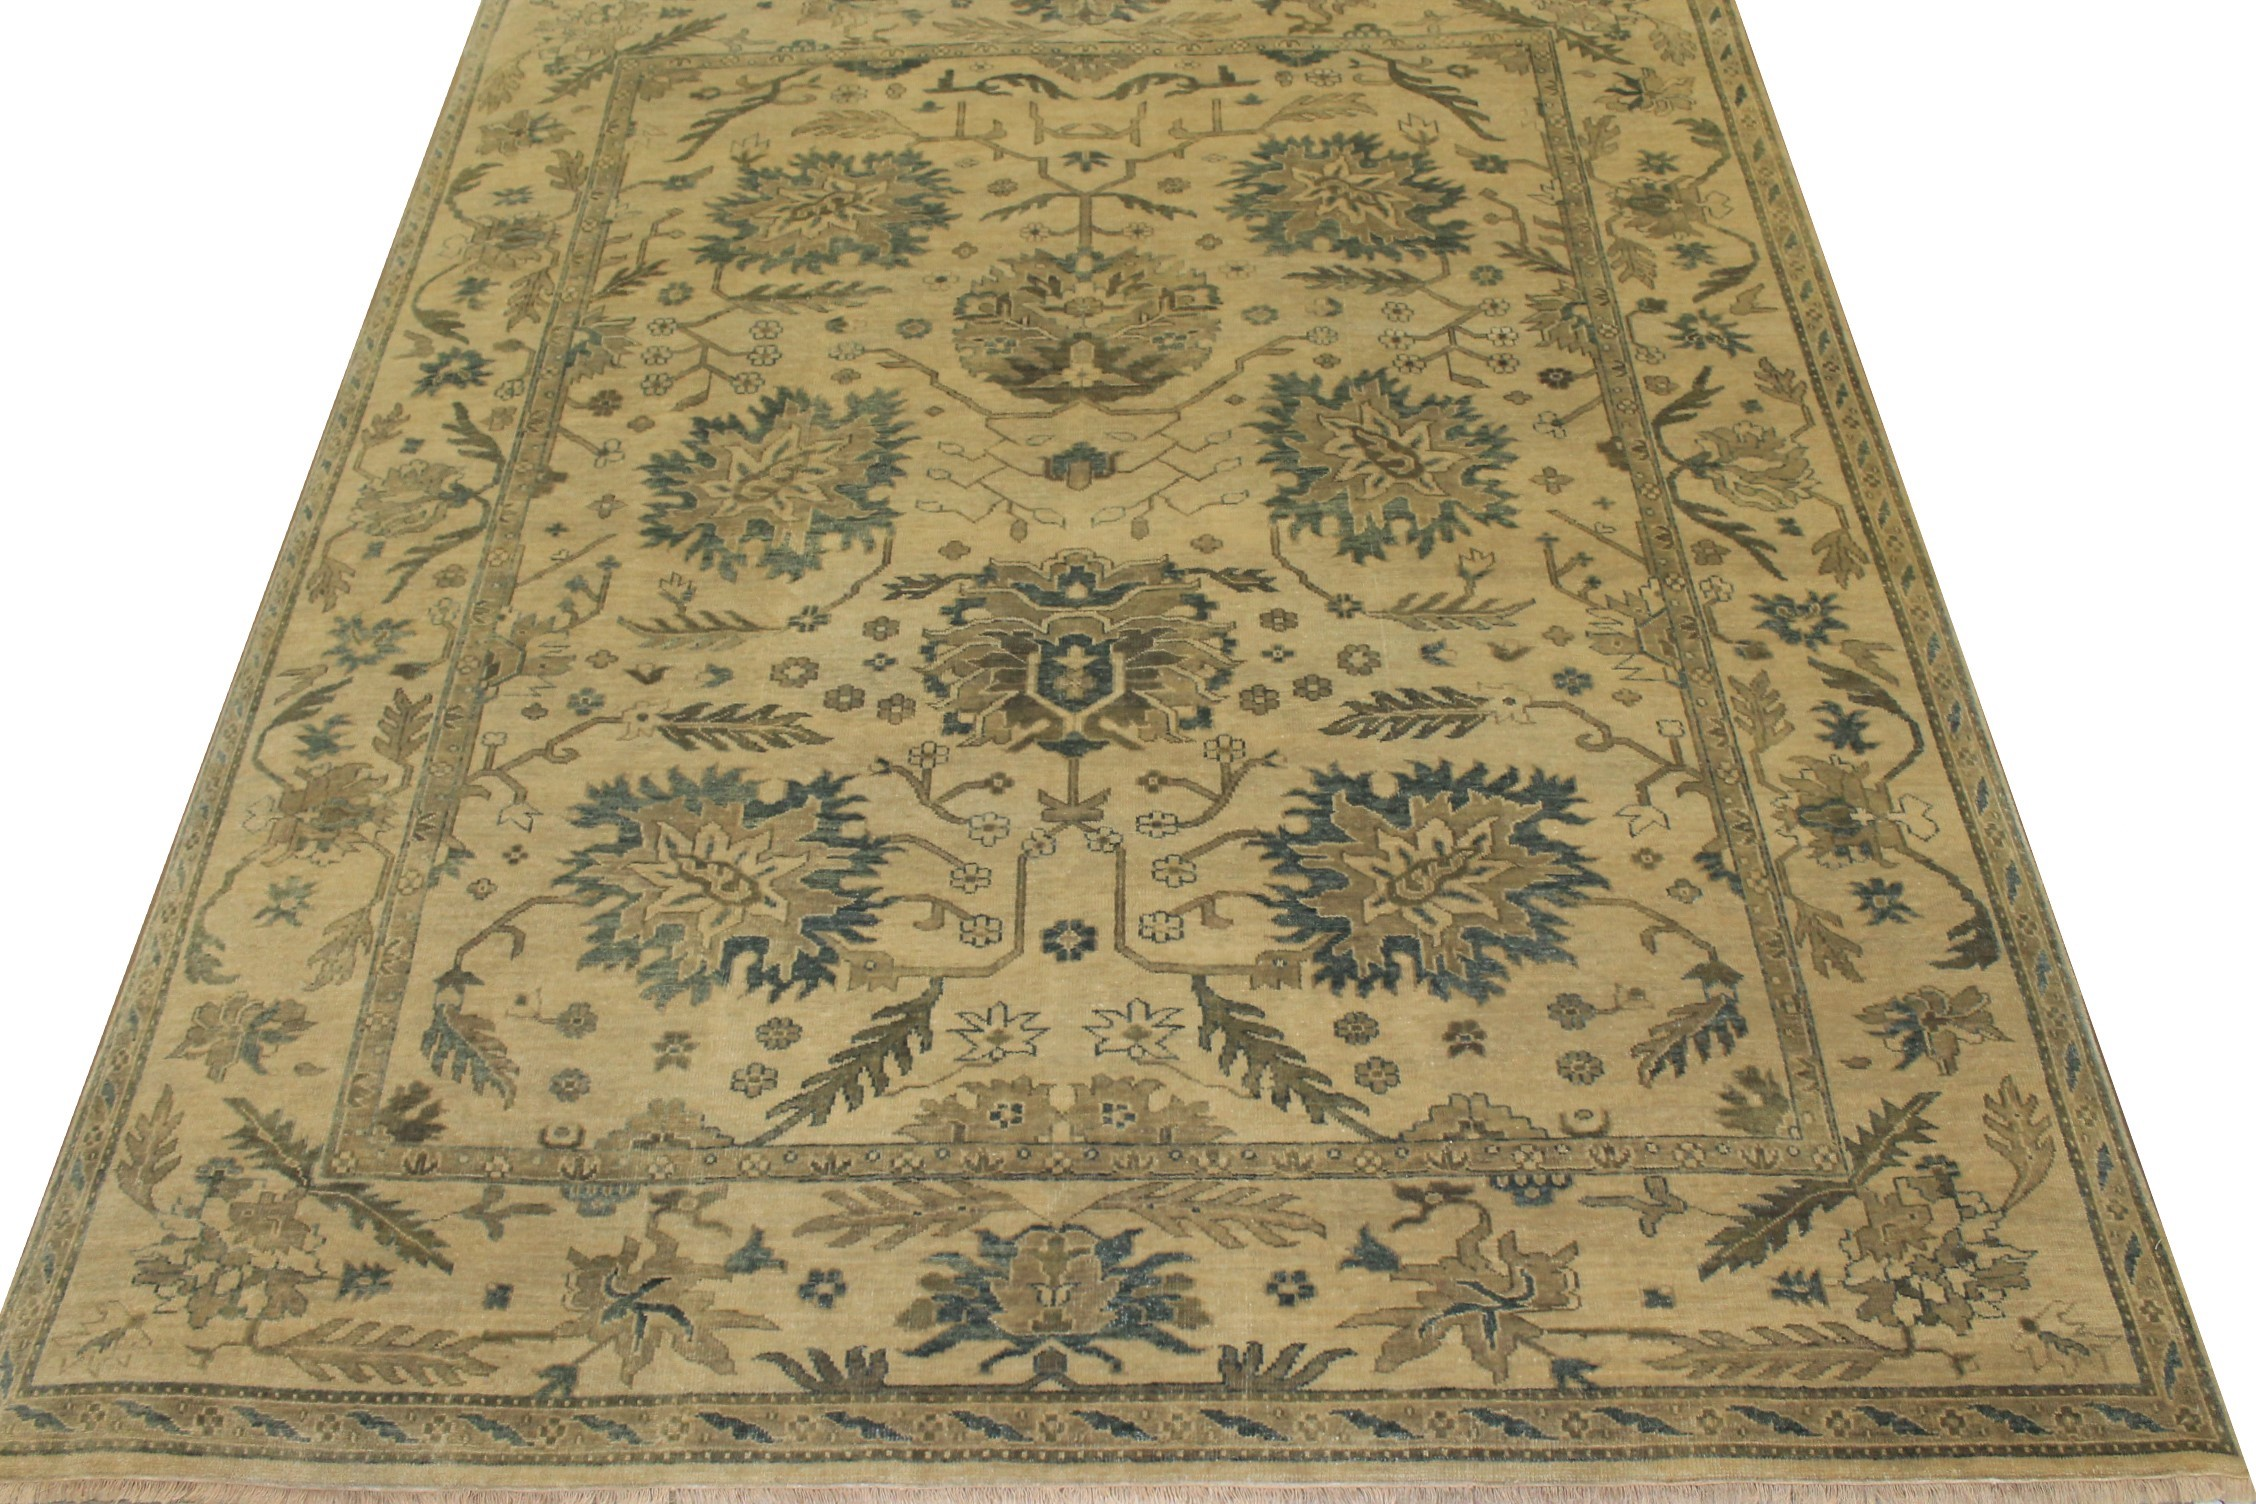 8x10 Oushak Hand Knotted Wool Area Rug - MR16224